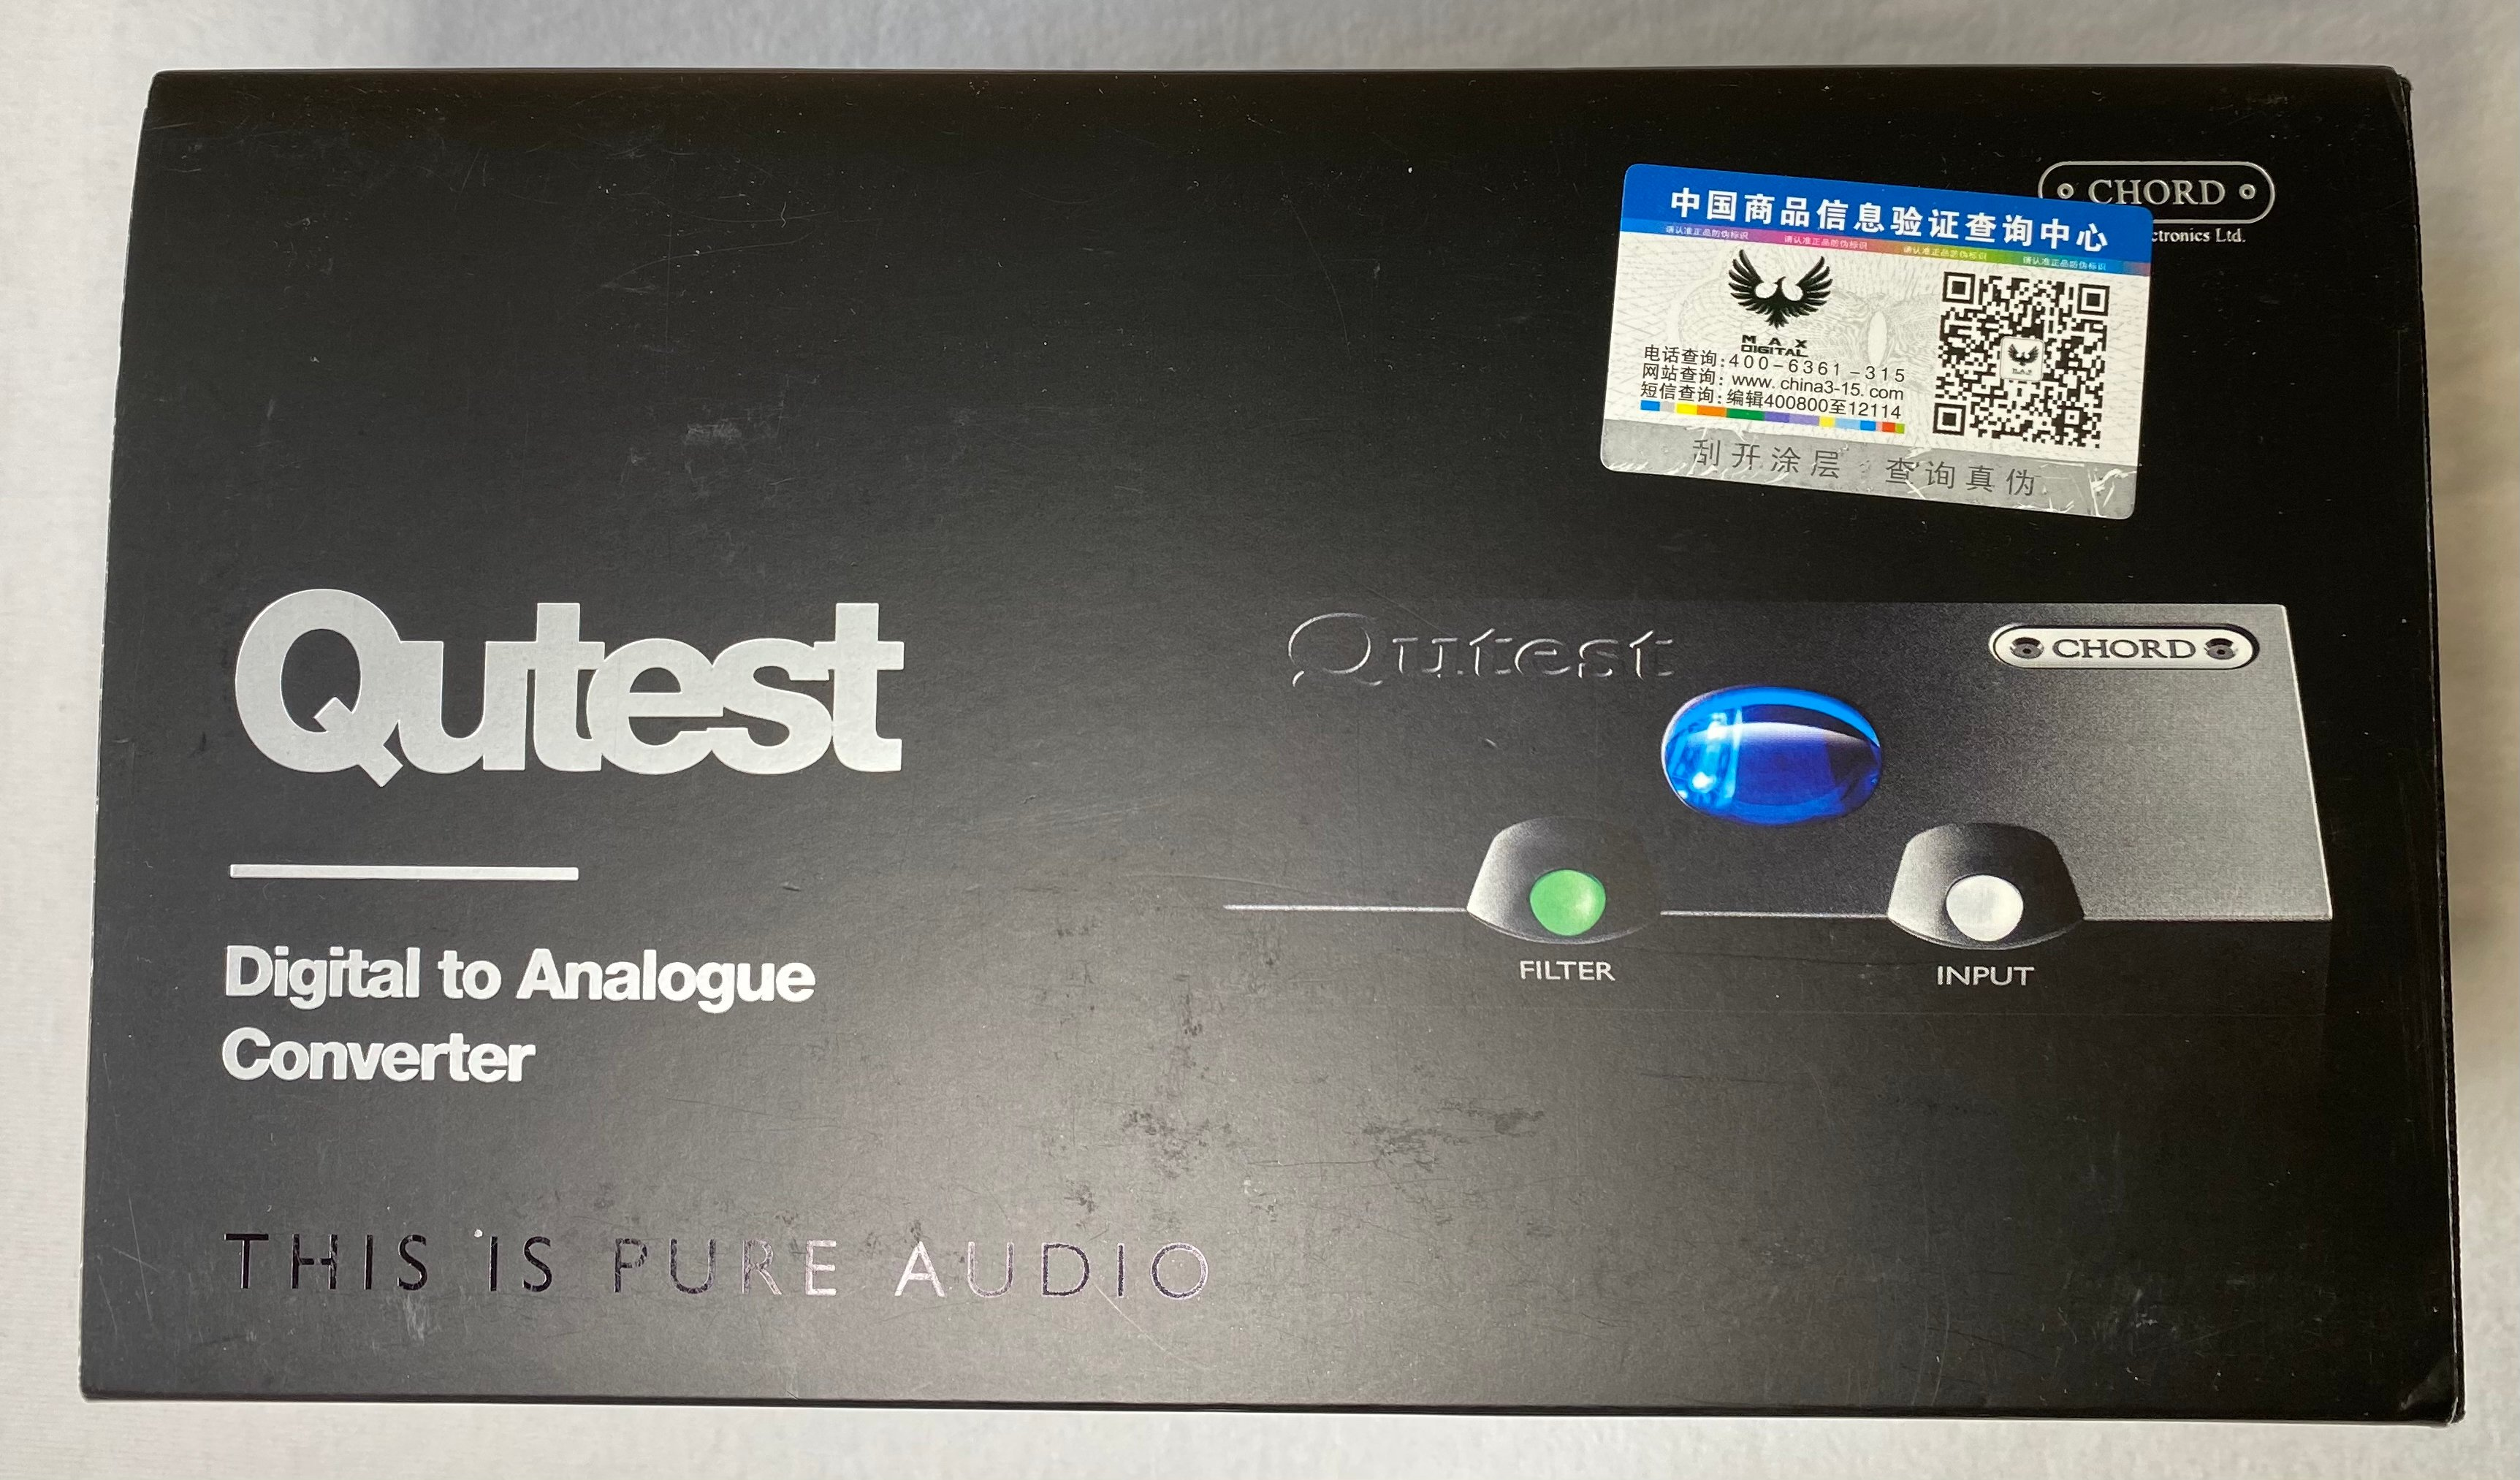 Chord Qutest Digital to Analog Convertor. BLACK. Perfect Condition